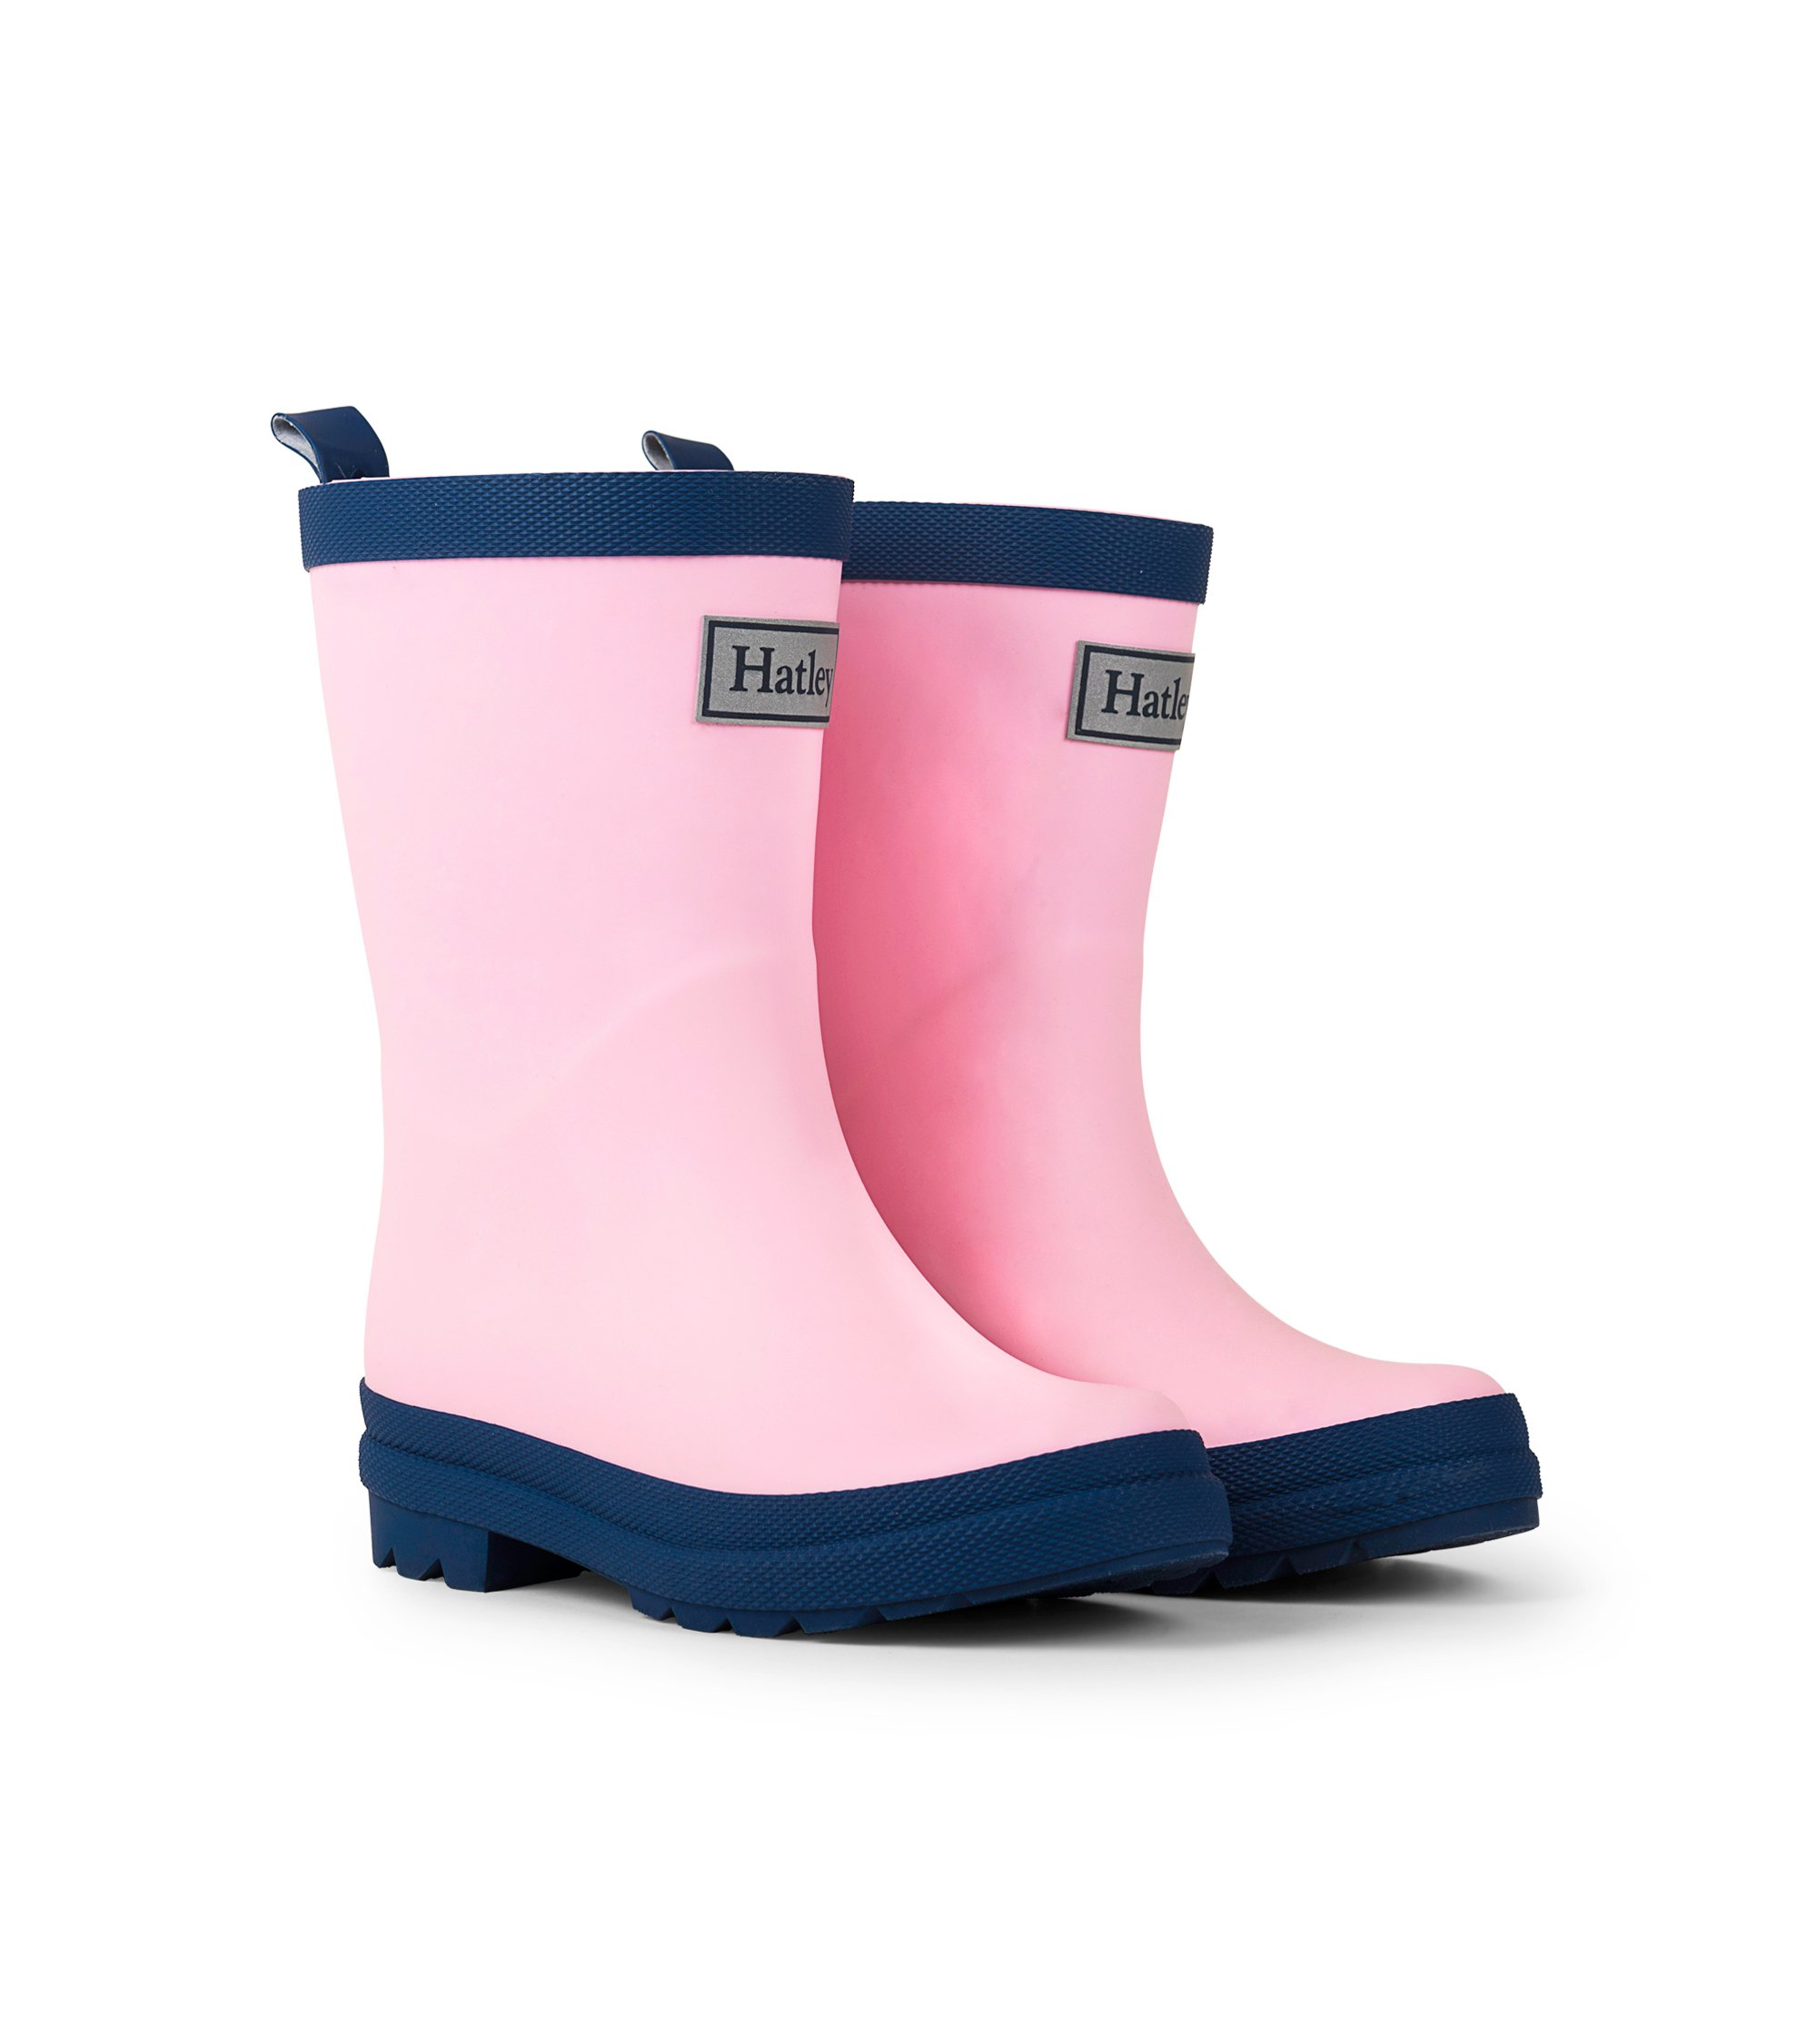 Hatley Kids' Little Classic Rain Boots, Pink & Navy, 13 US Child by Hatley